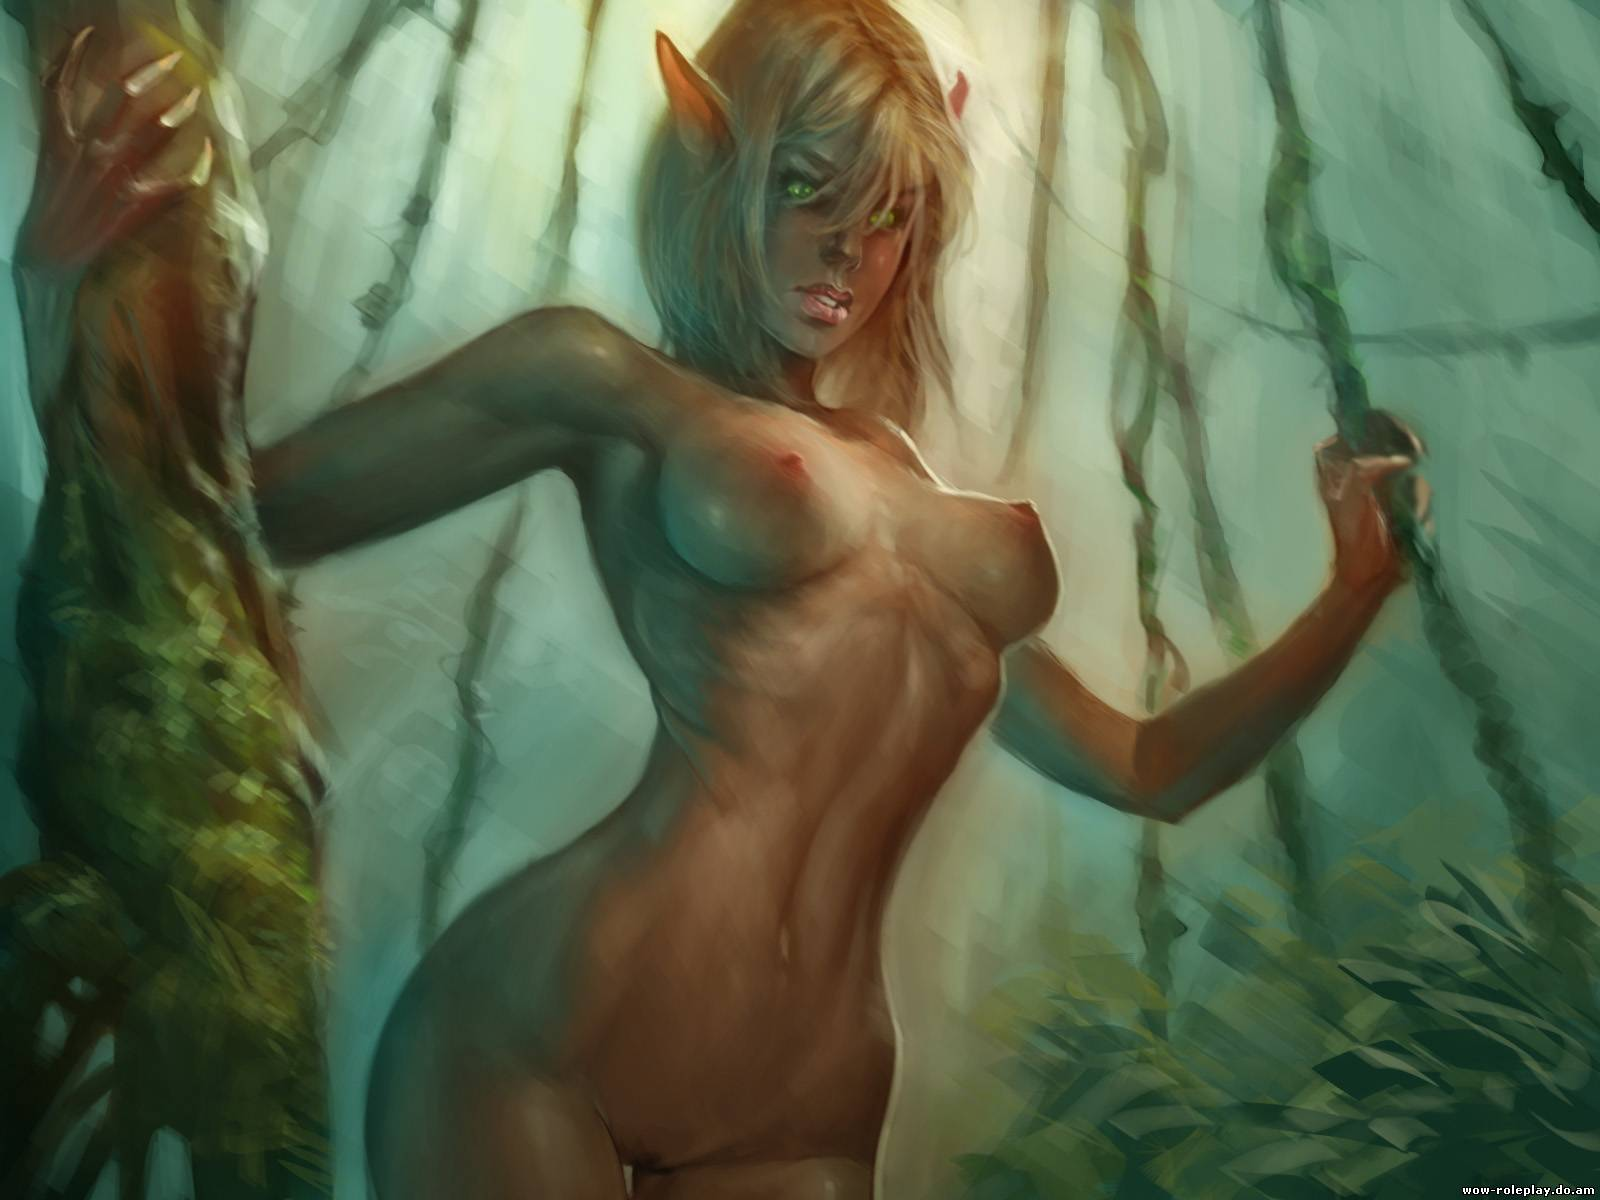 Nude erotic fantasy art porn galleries